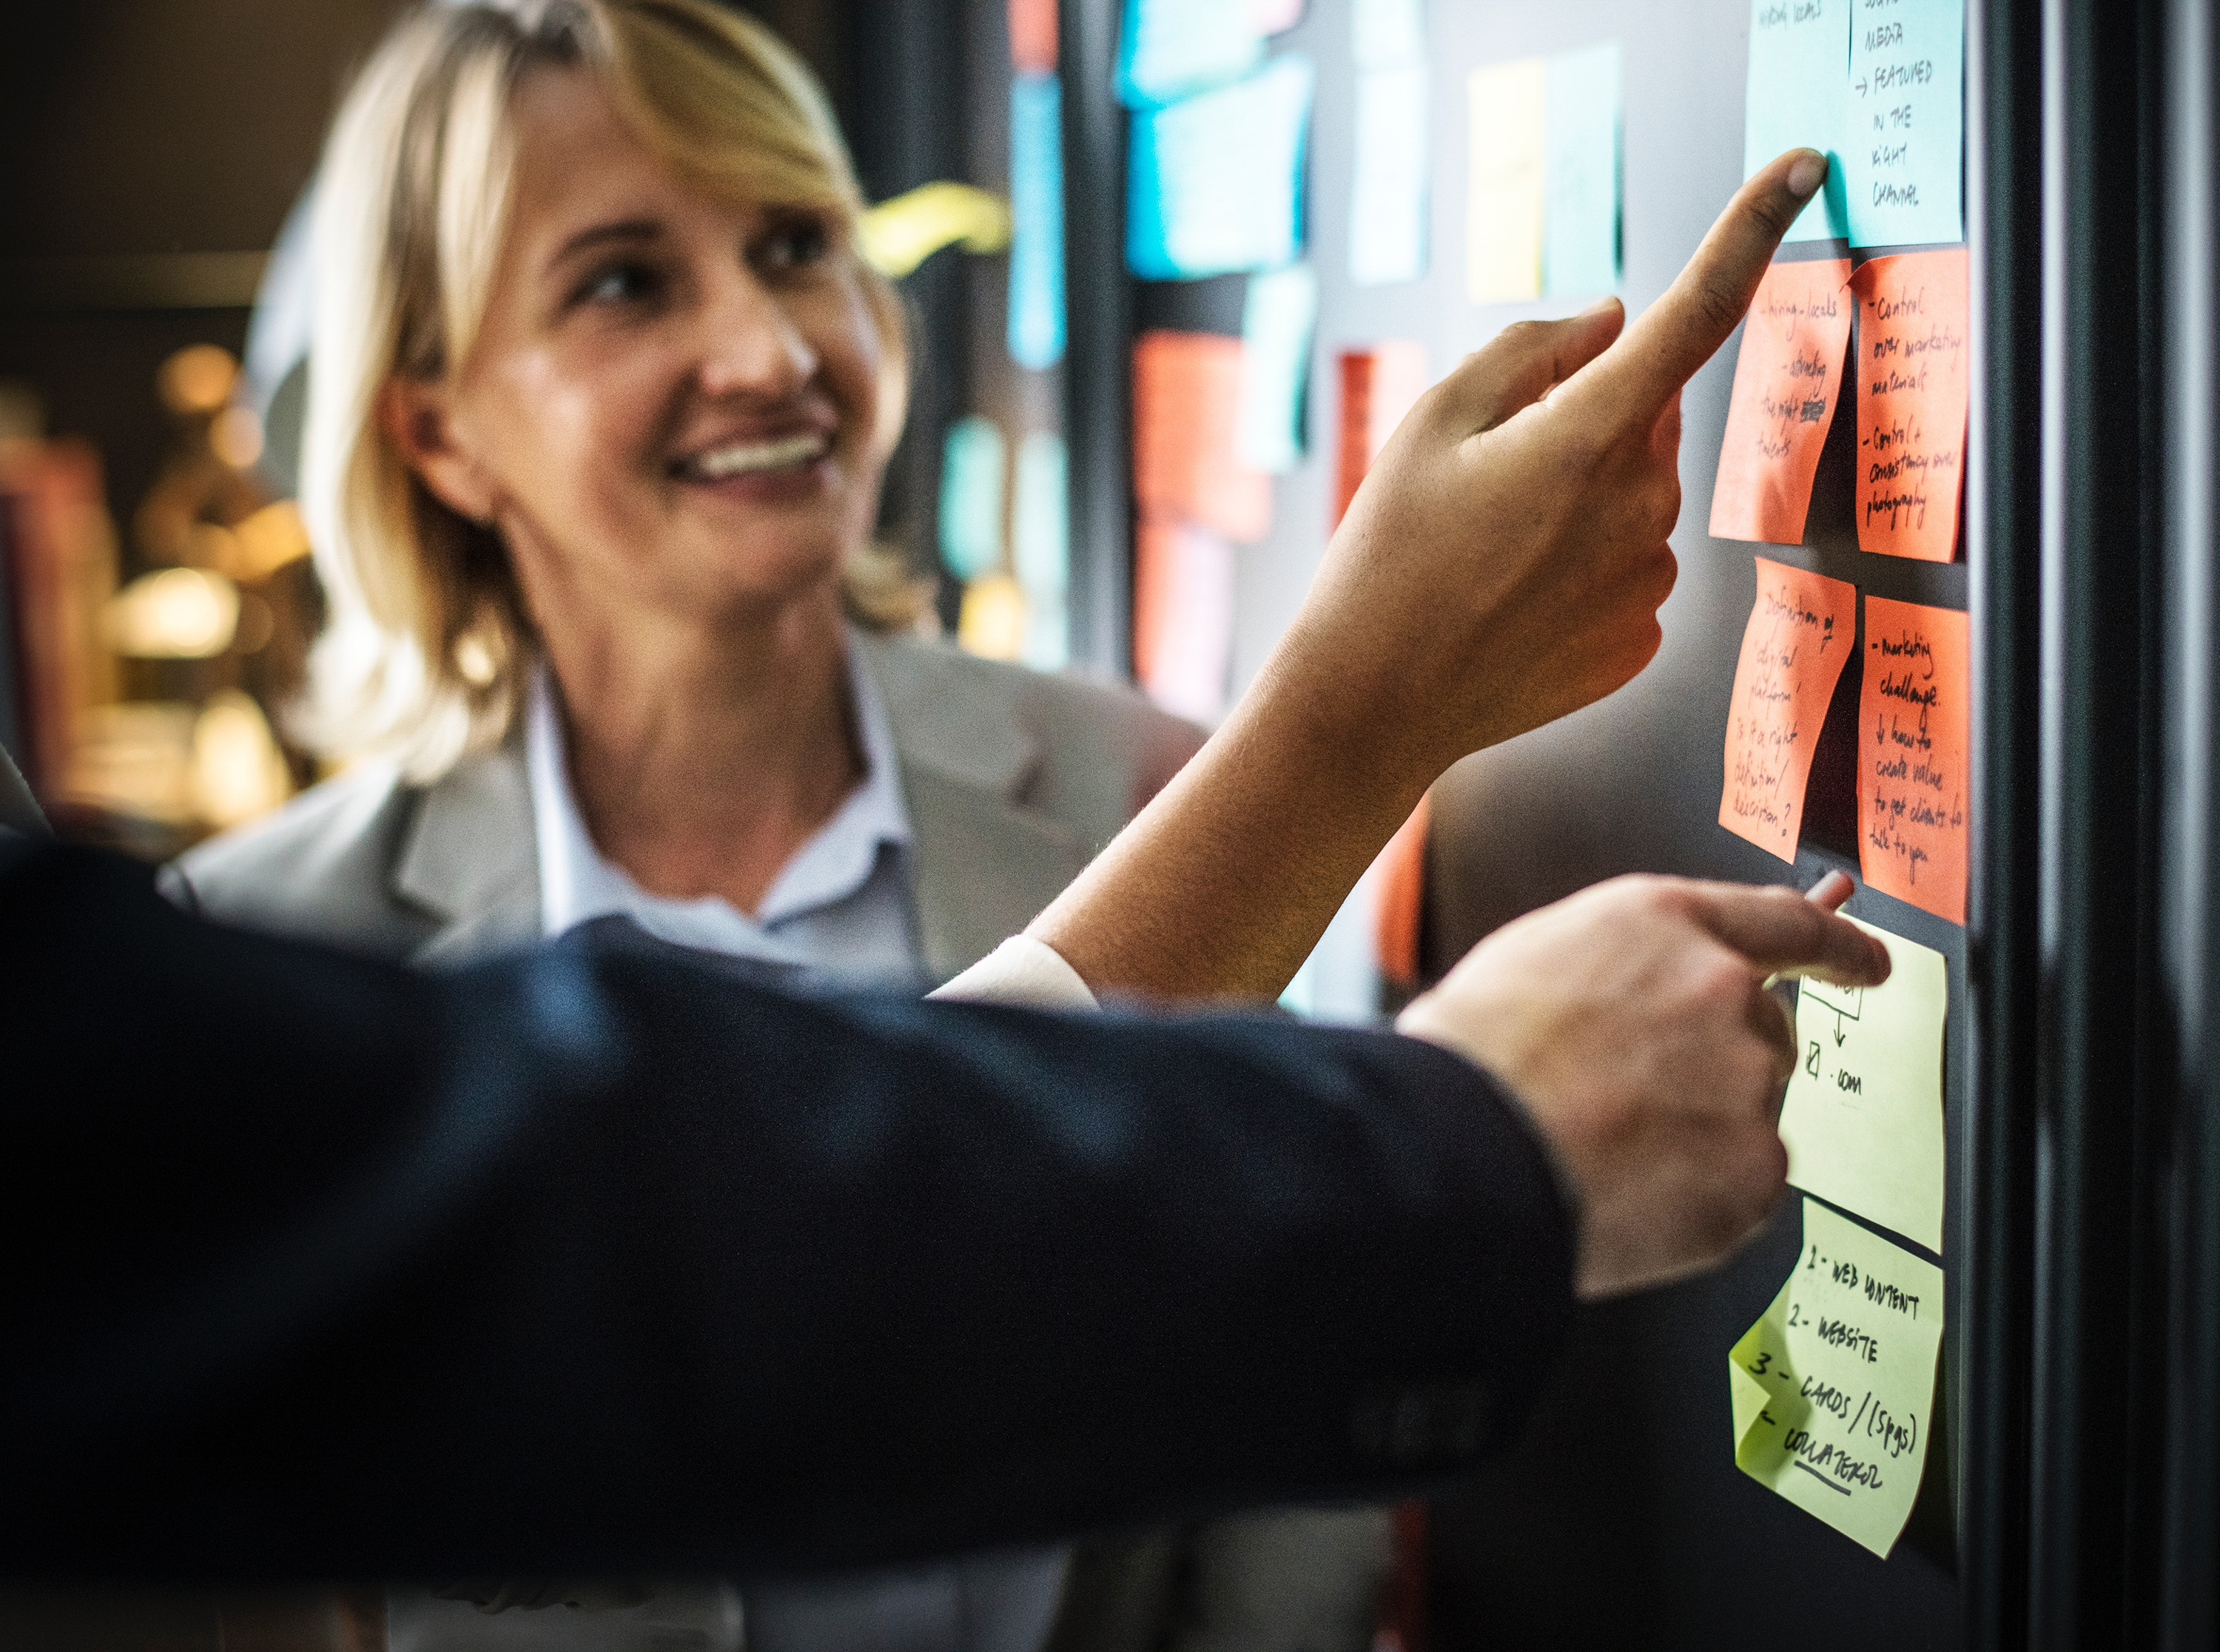 A women looking at a board with post-it notes on it